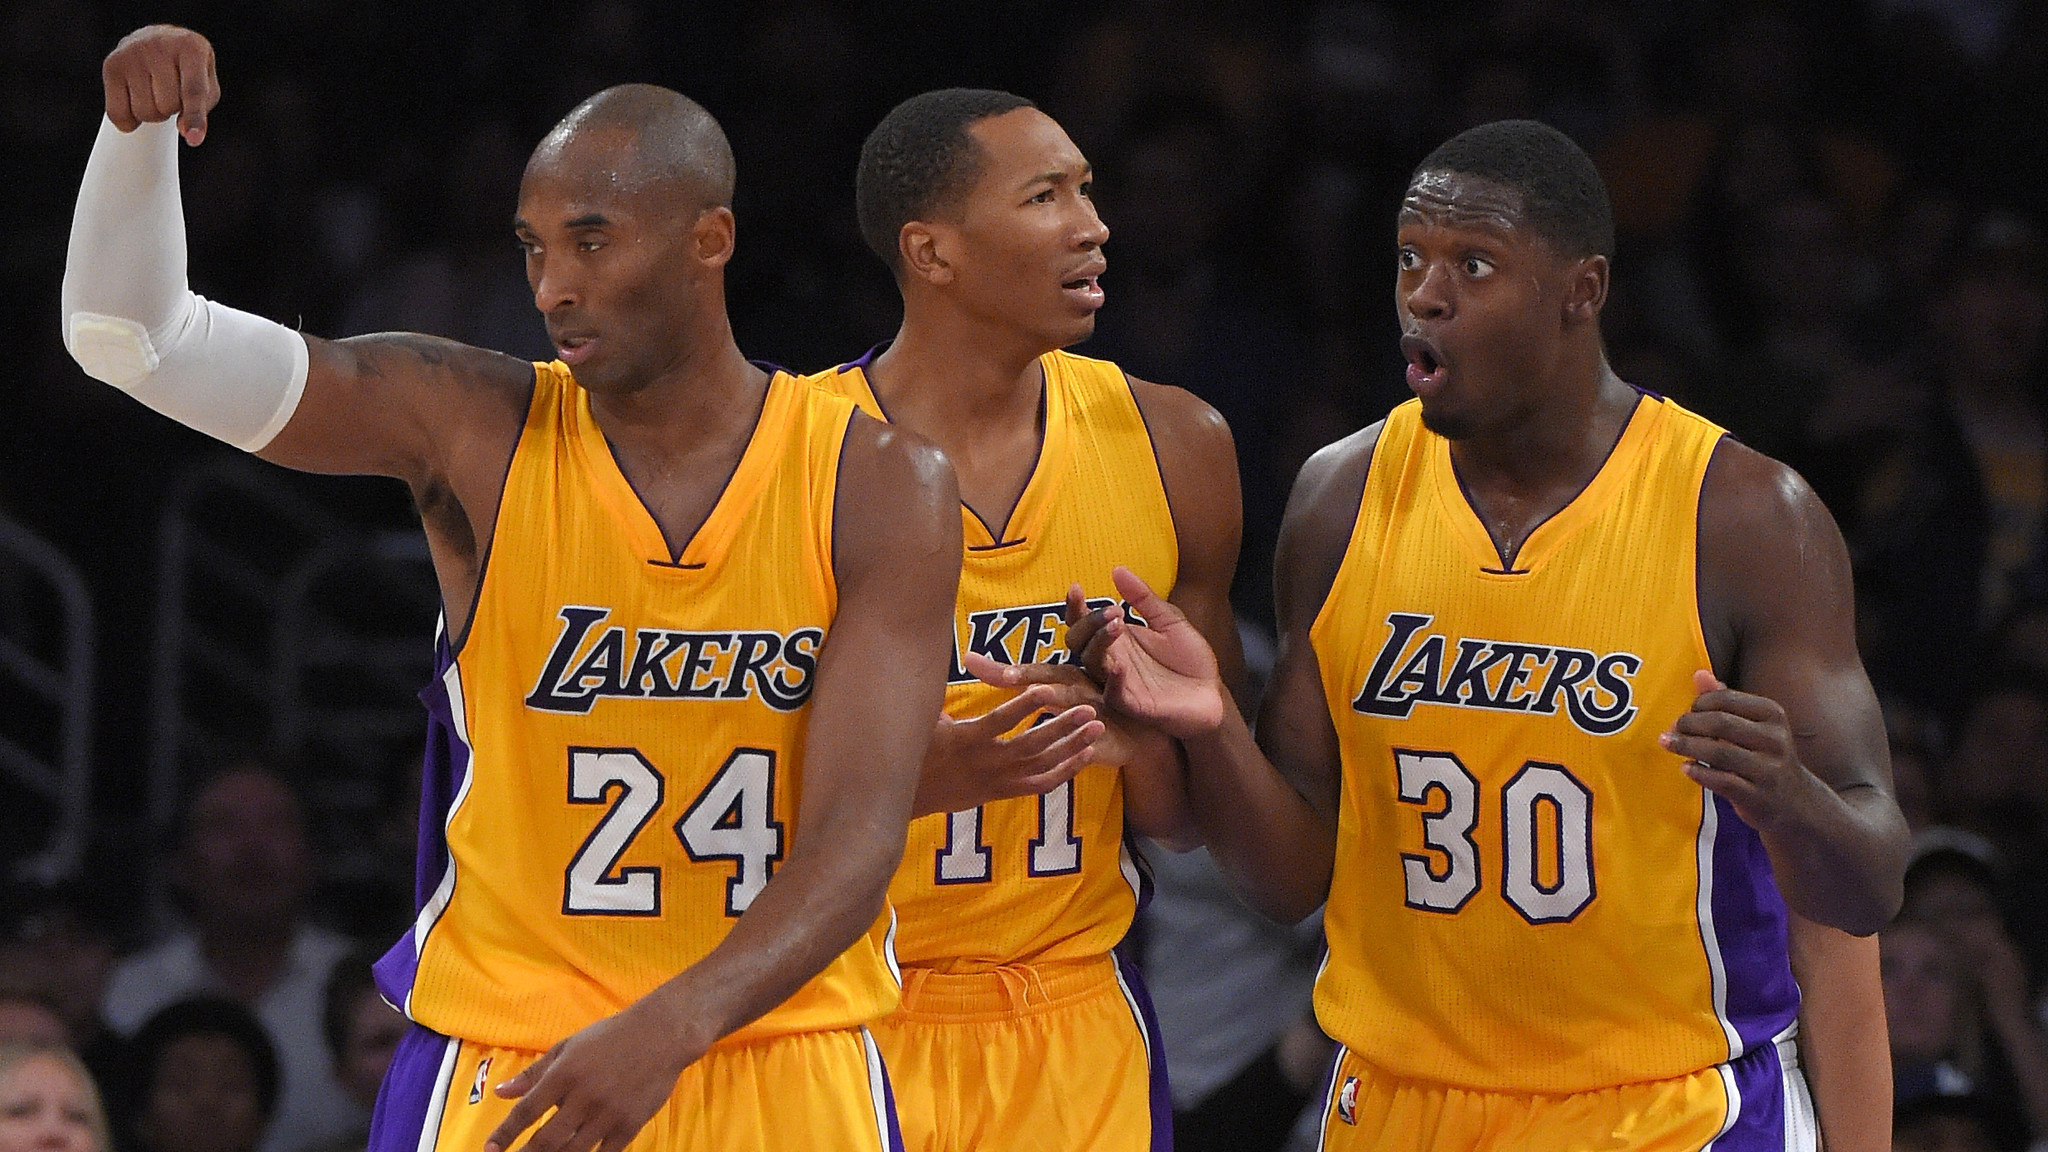 Kobe Bryant has strong outing in Lakers' exhibition win